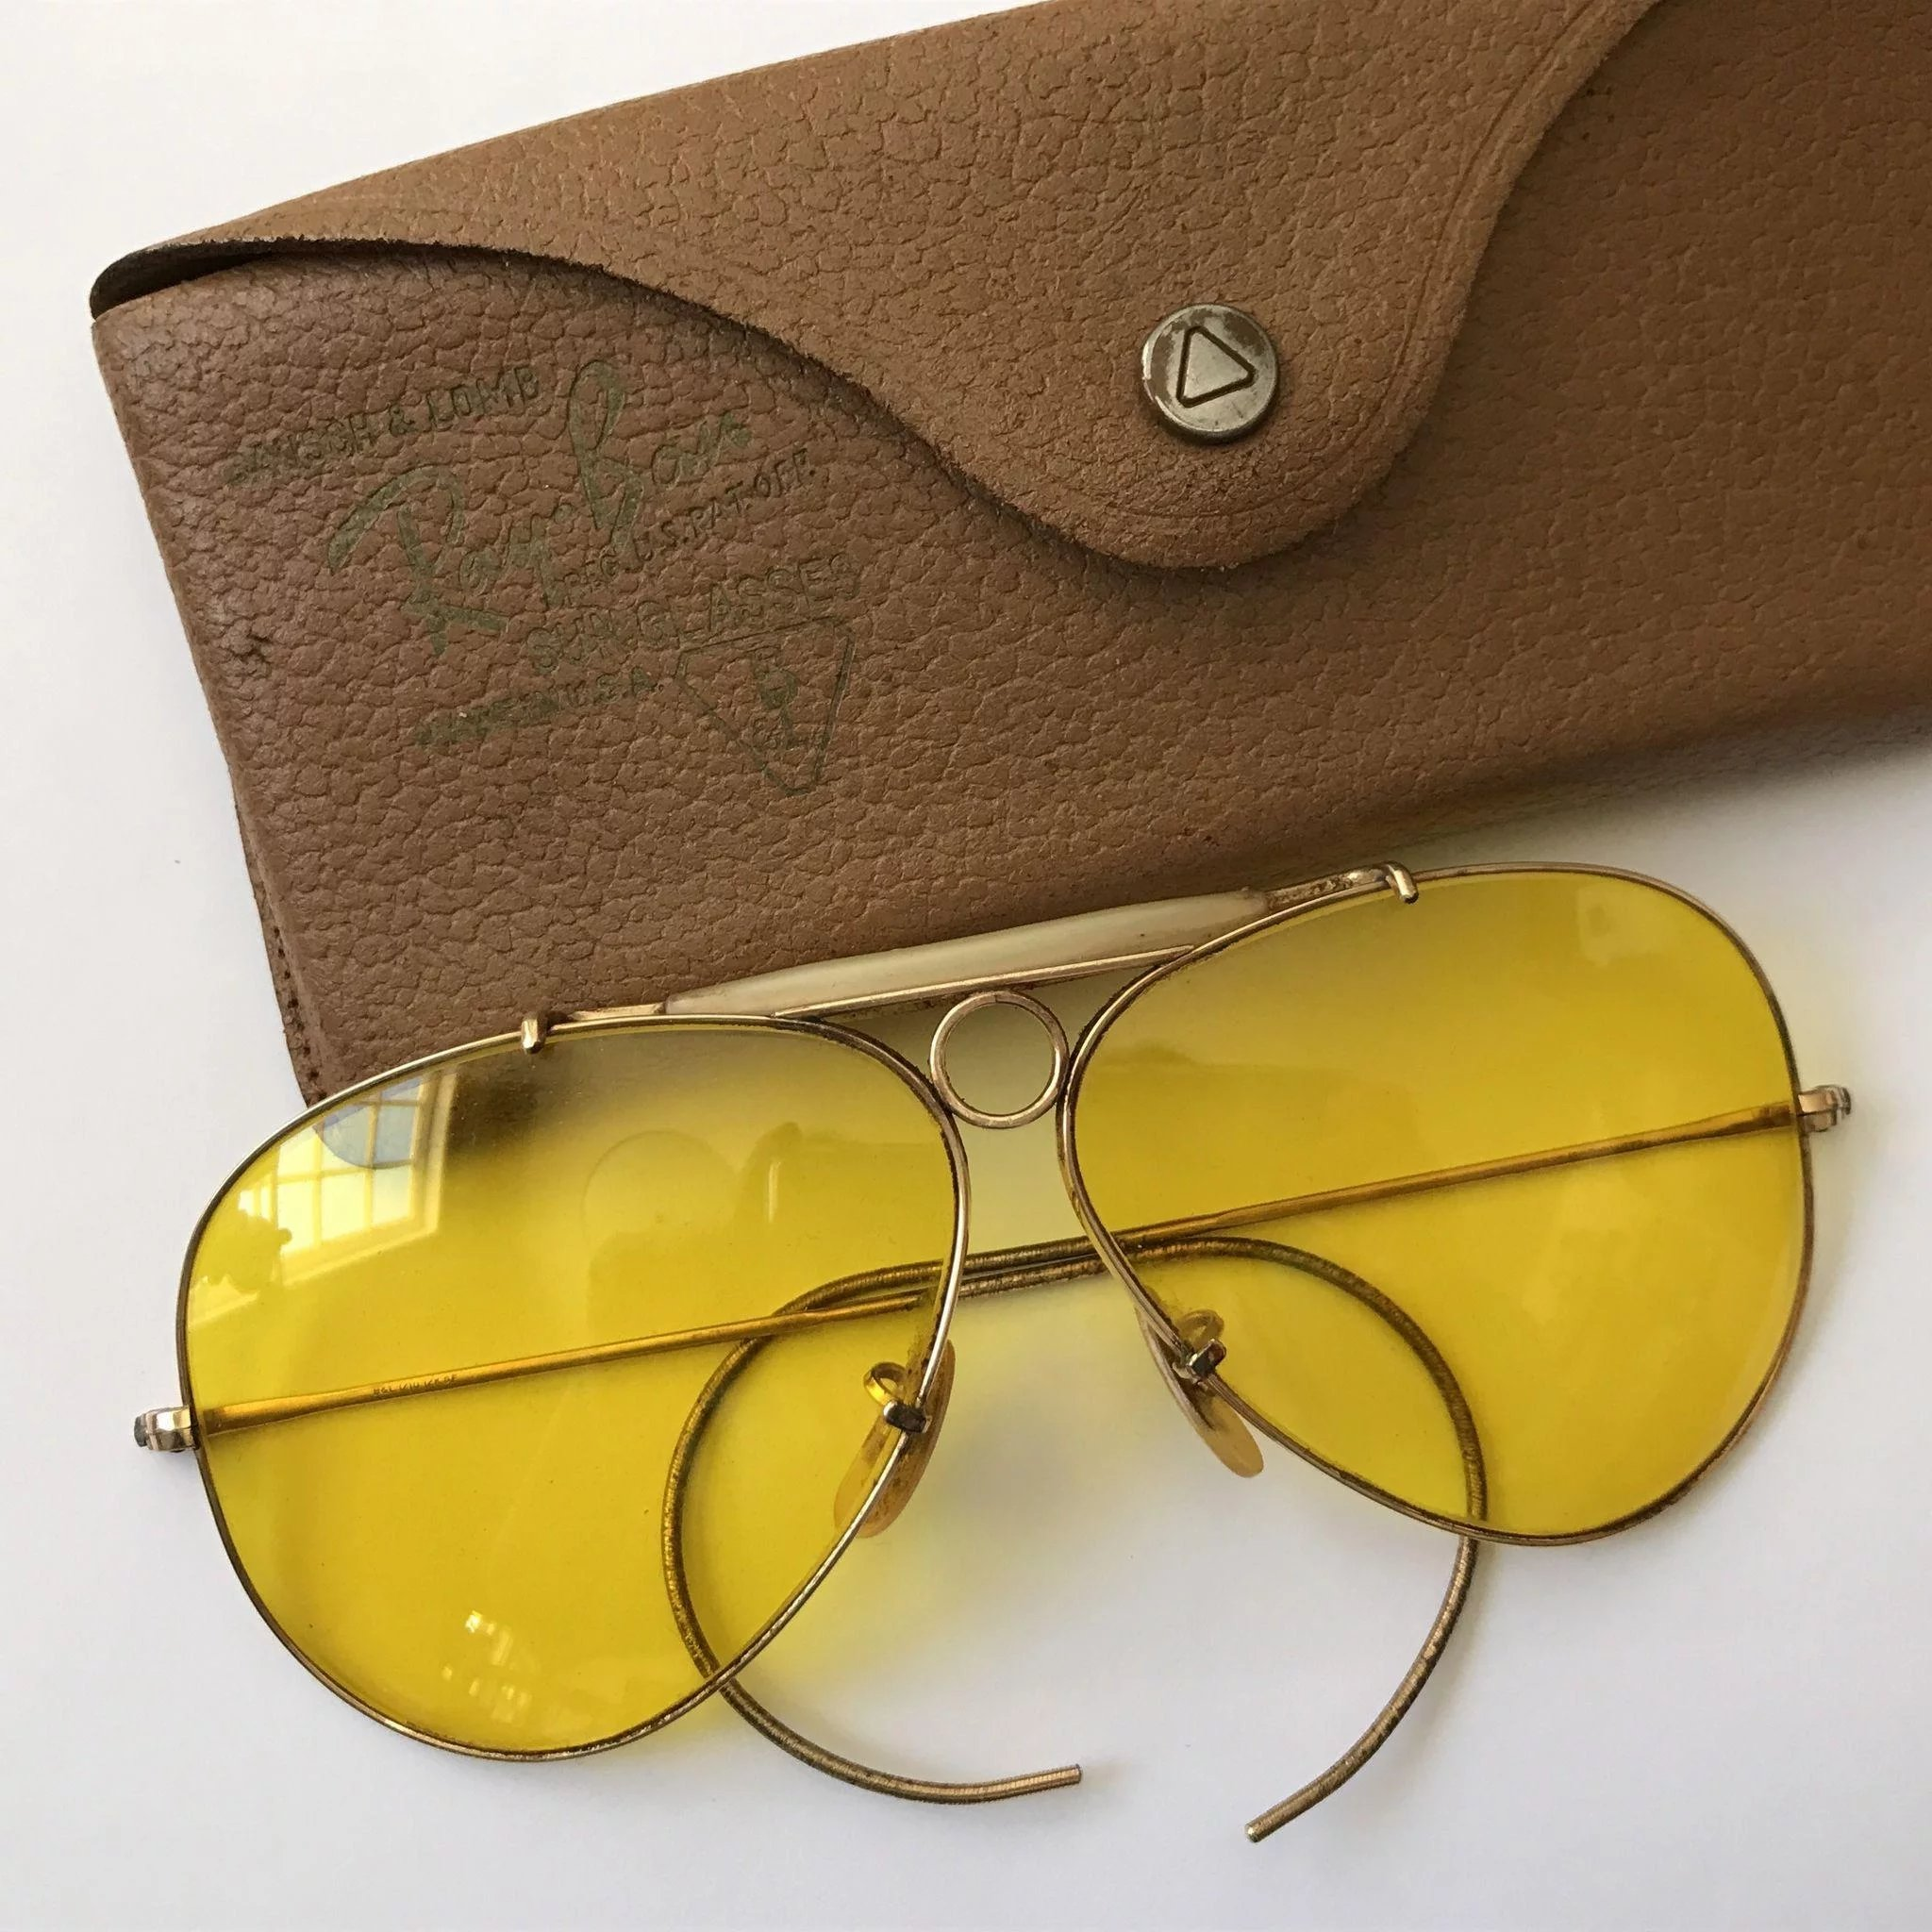 fb8f2958f Bausch & Lomb Ray Ban Hunting Yellow Lens Sunglasses & Case - early :  Patricia Funt Antiques | Ruby Lane